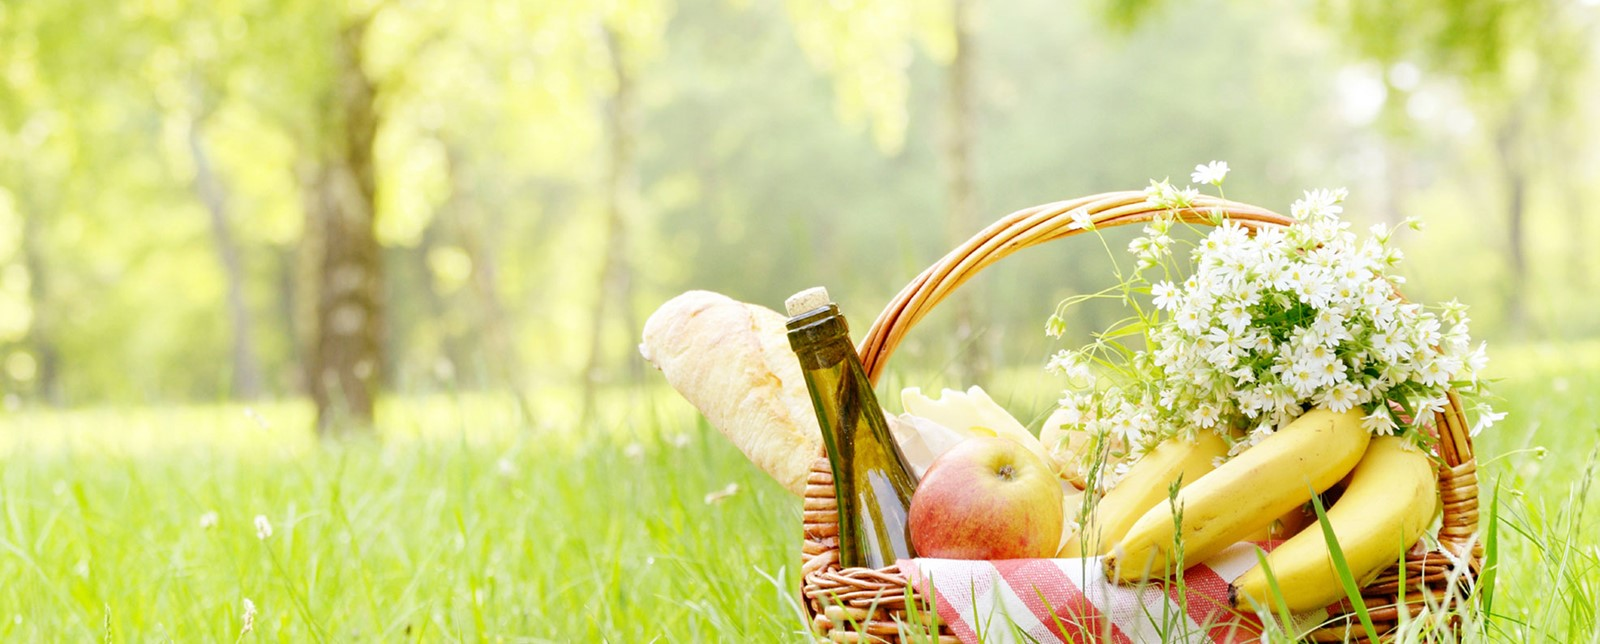 A picnic basket with wine, bananas, a baguette and an apple on the grass of a park